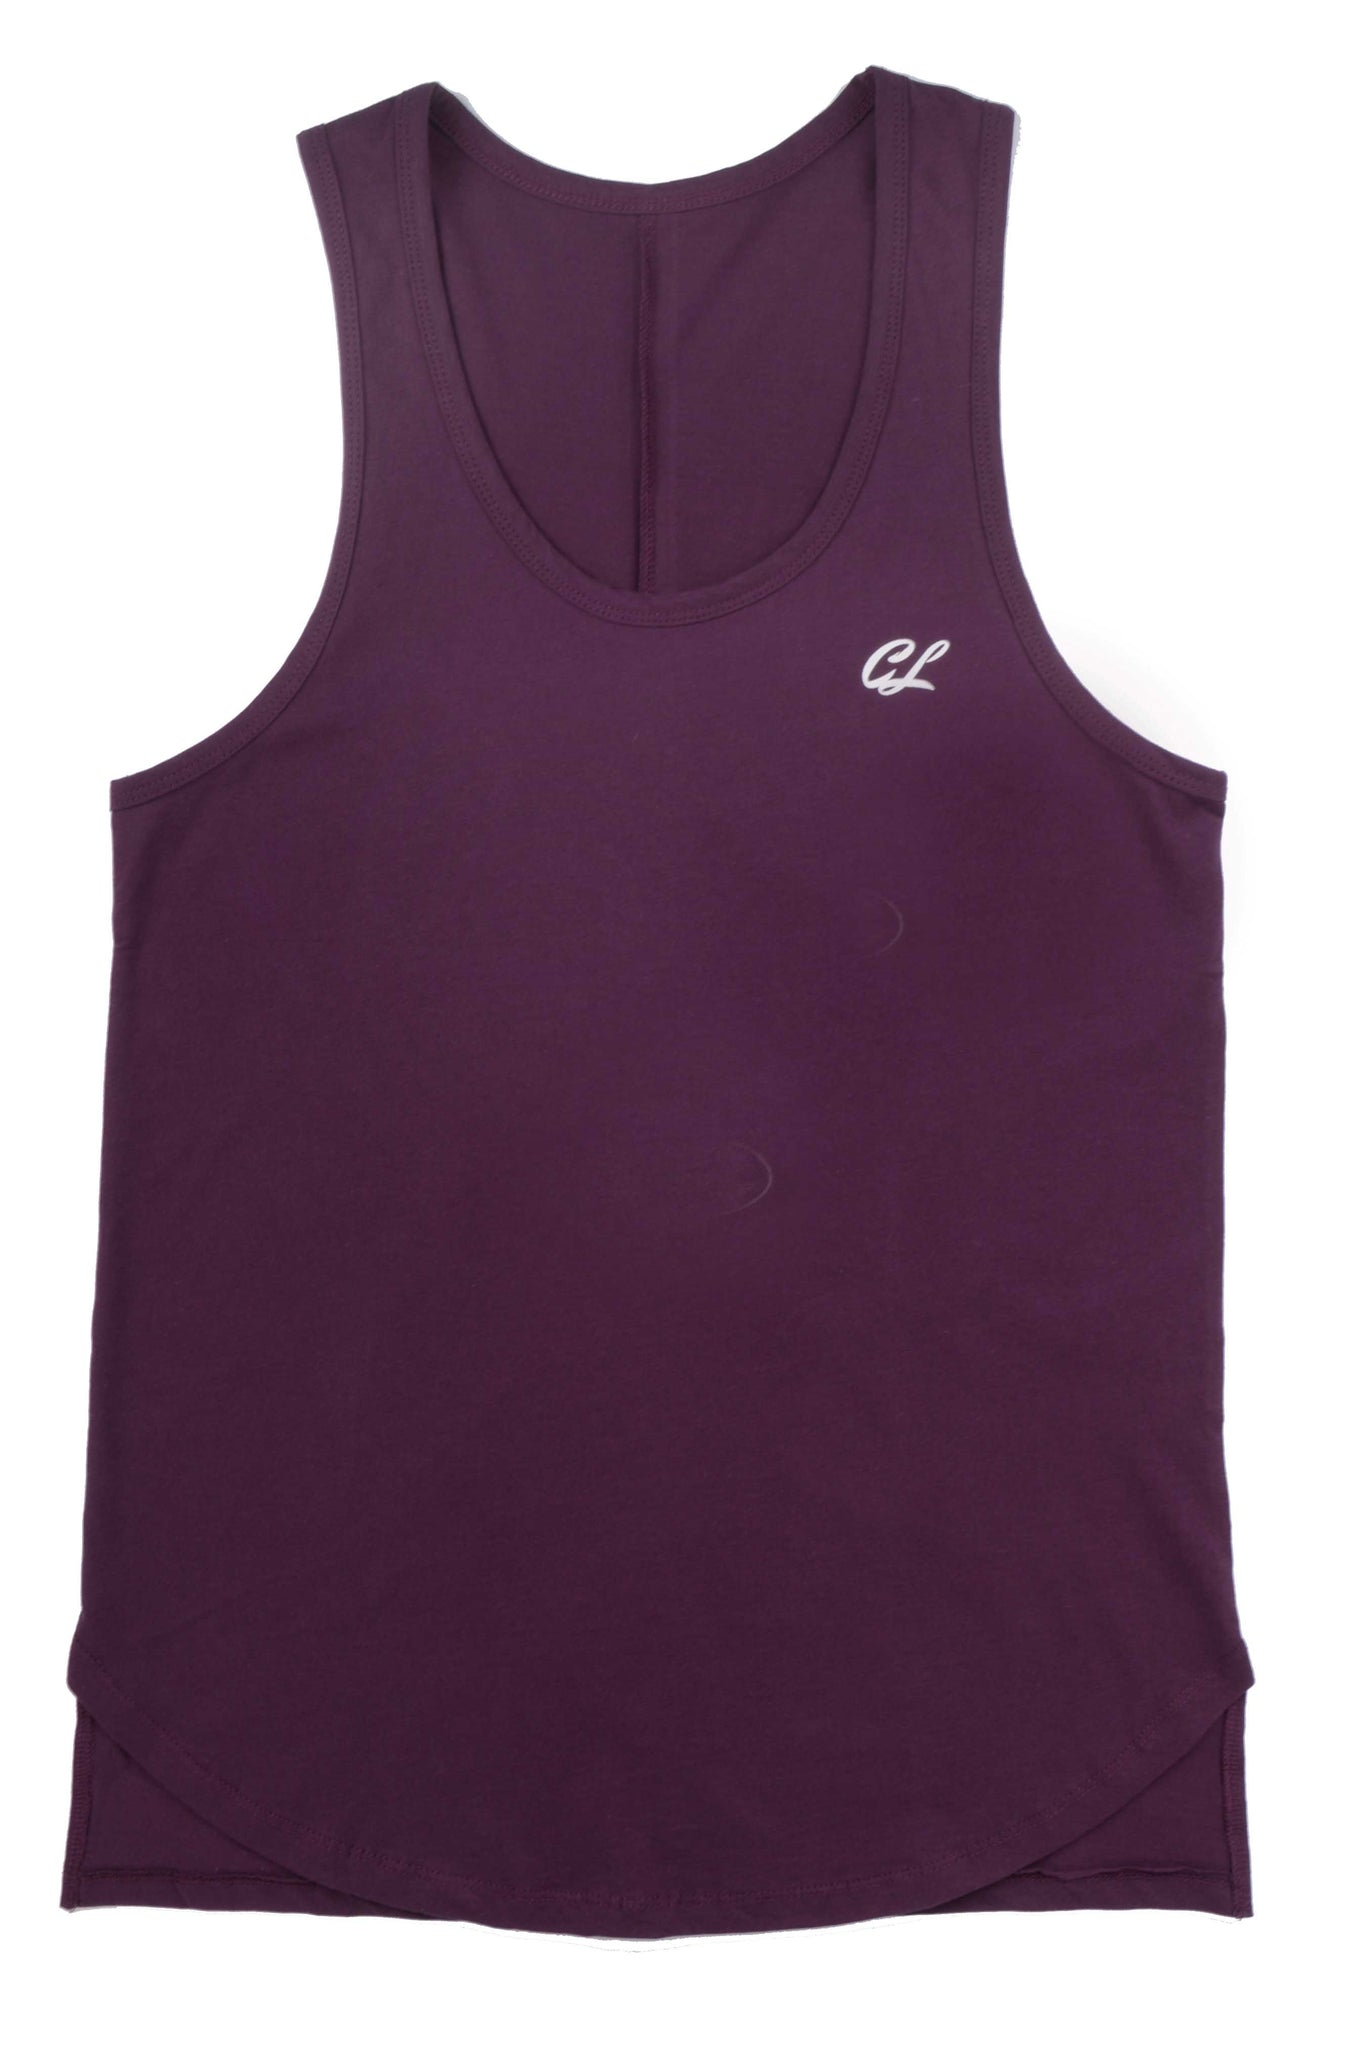 Scallop Front Tank Top - Eggplant